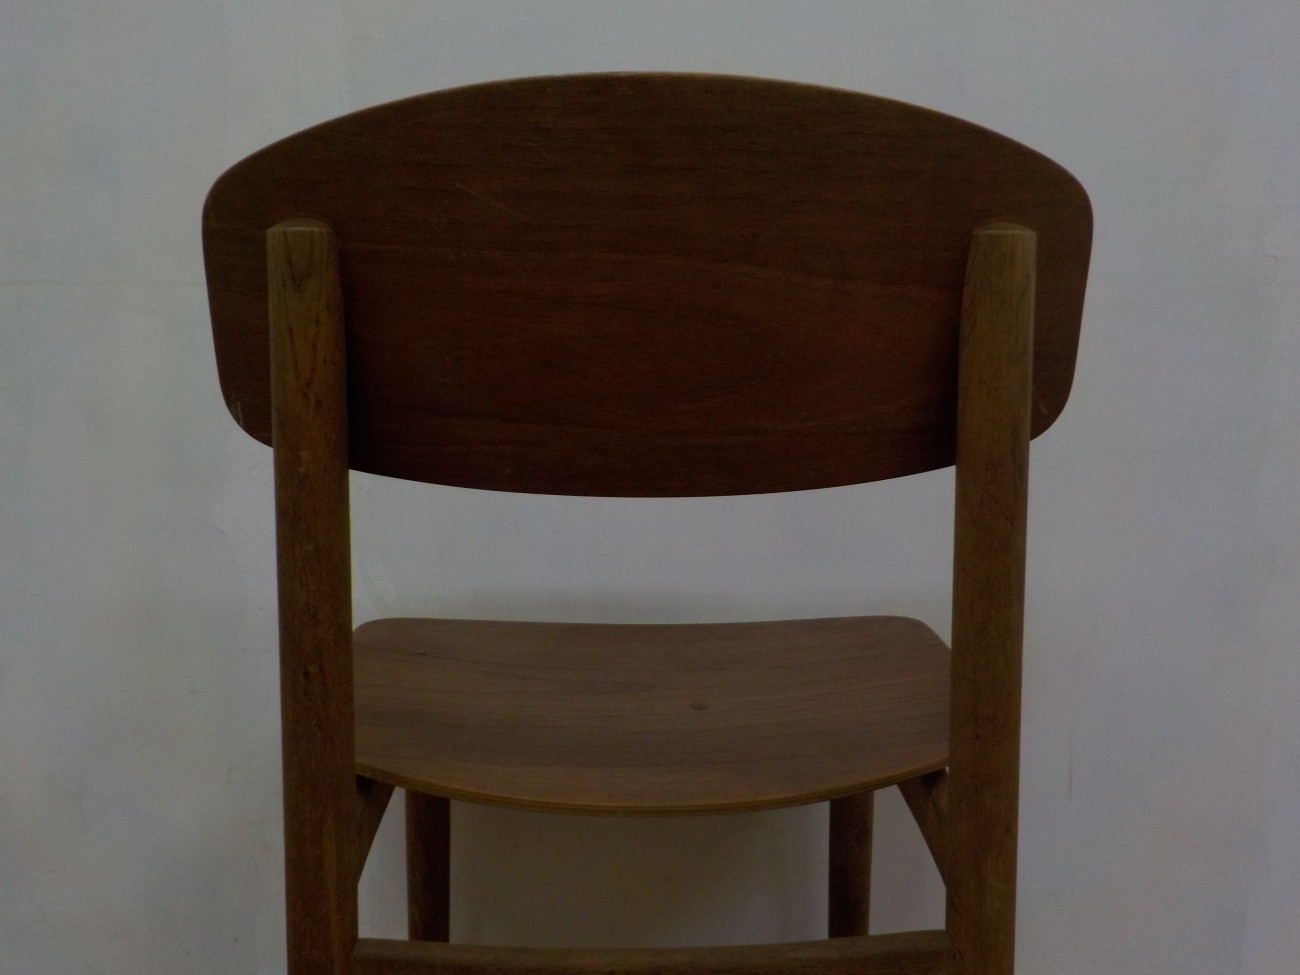 Borge Mogensen model122 Dining Chair / チークxオーク ボーエ・モーエンセン ダイニングチェア / stock2012-33-(1)